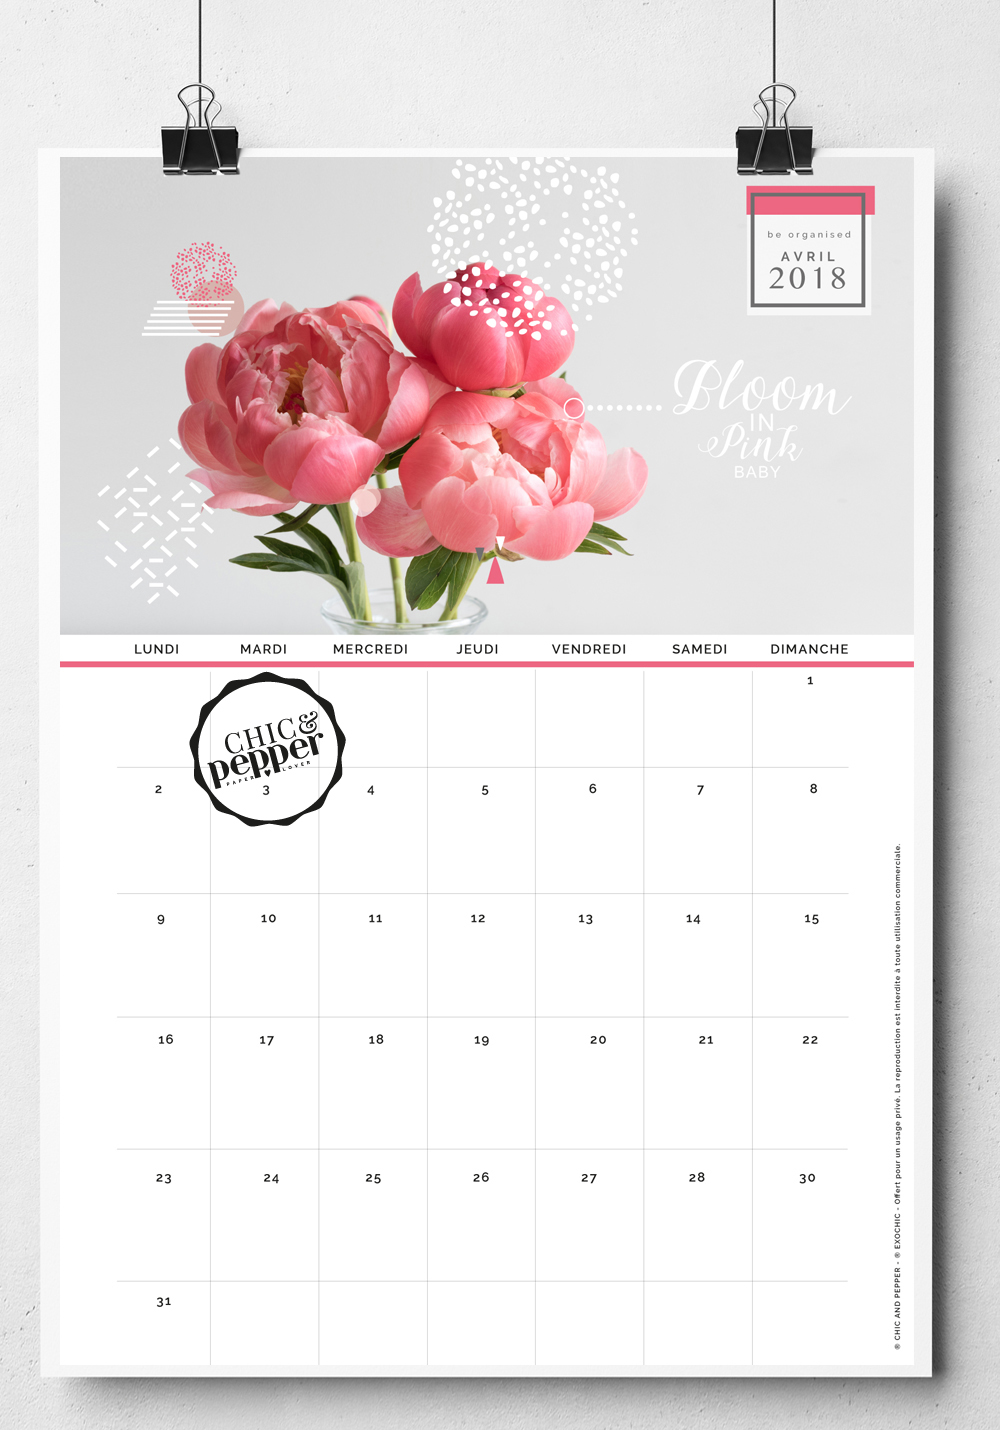 Fond D Ecran Calendrier 2020.Fond Ecran Calendrier Avril 2018 Chic And Pepper Chic And